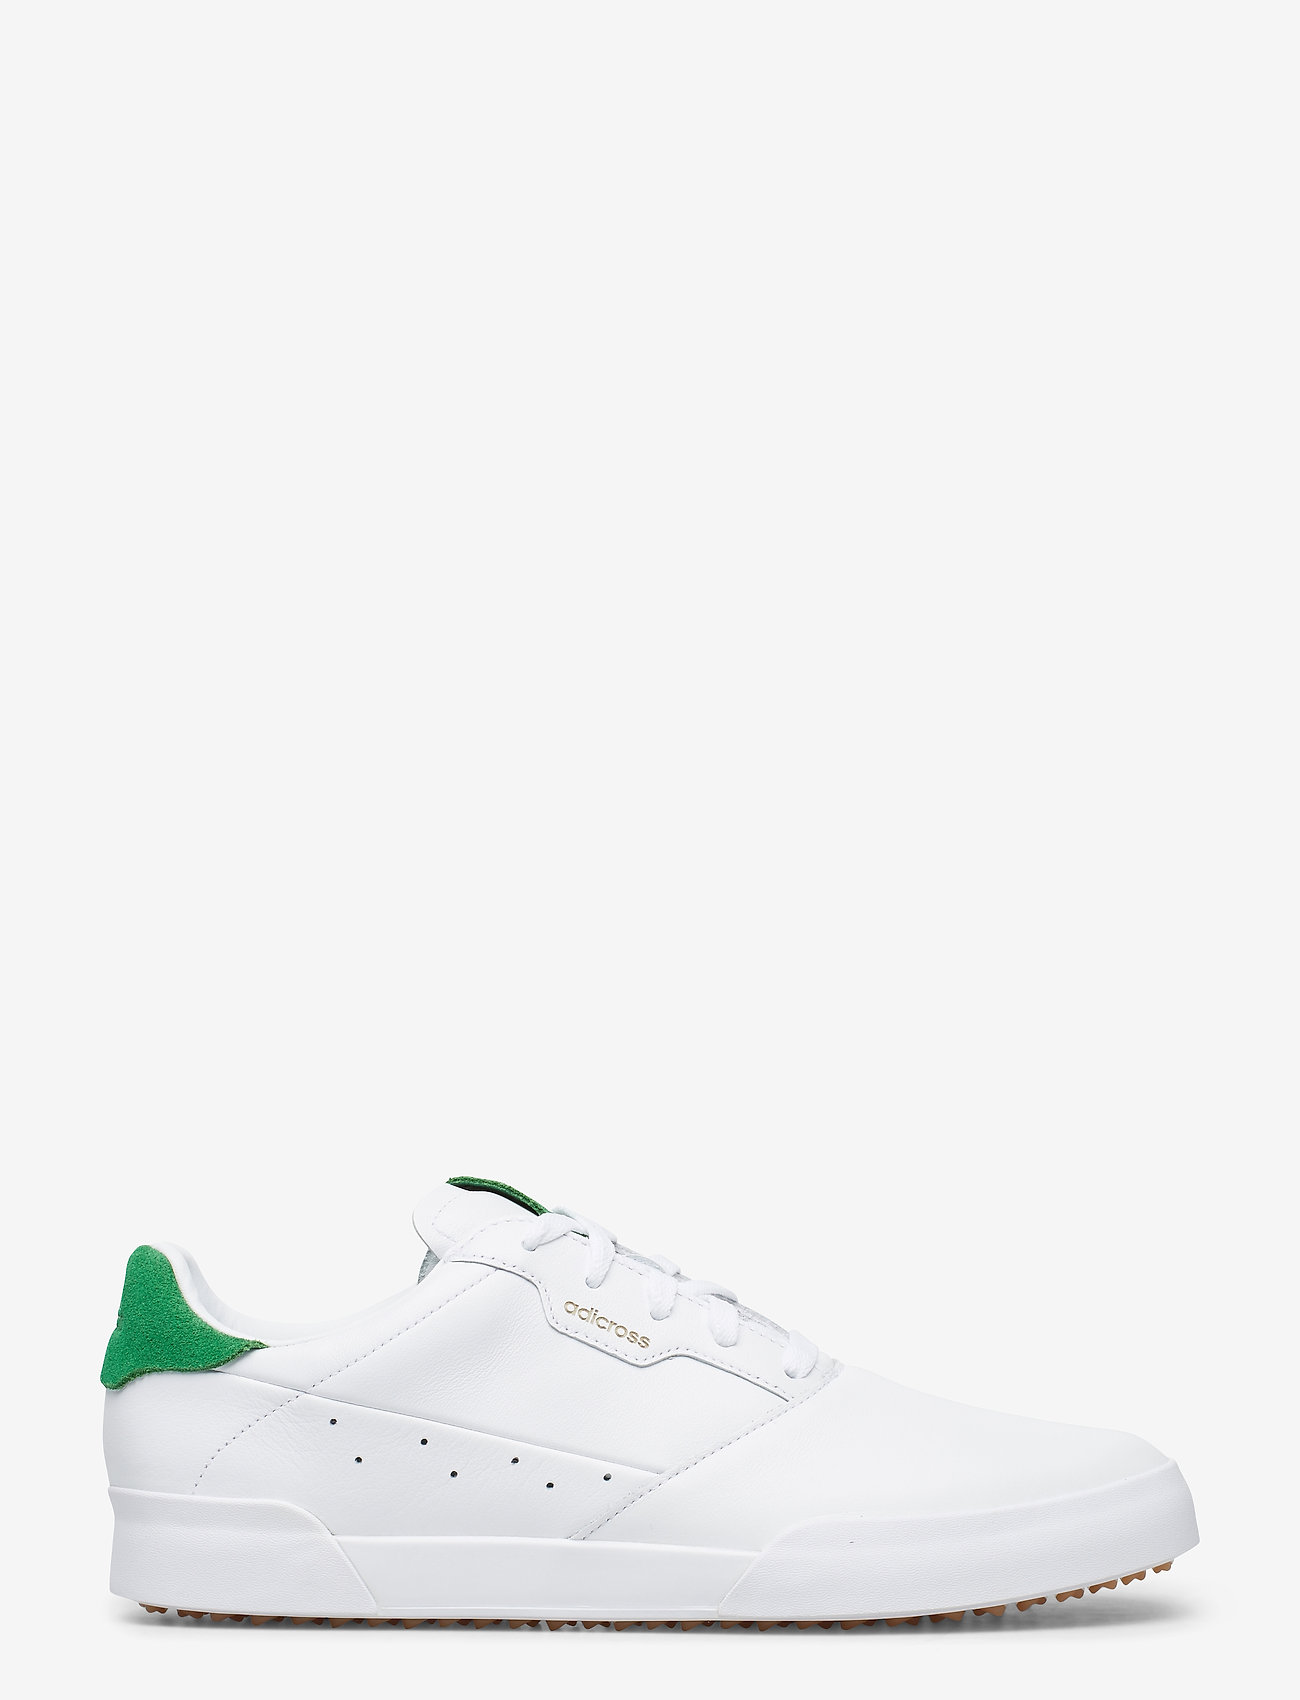 adidas Golf - ADICROSS RETRO - golfsko - ftwwht/green/gum3 - 1